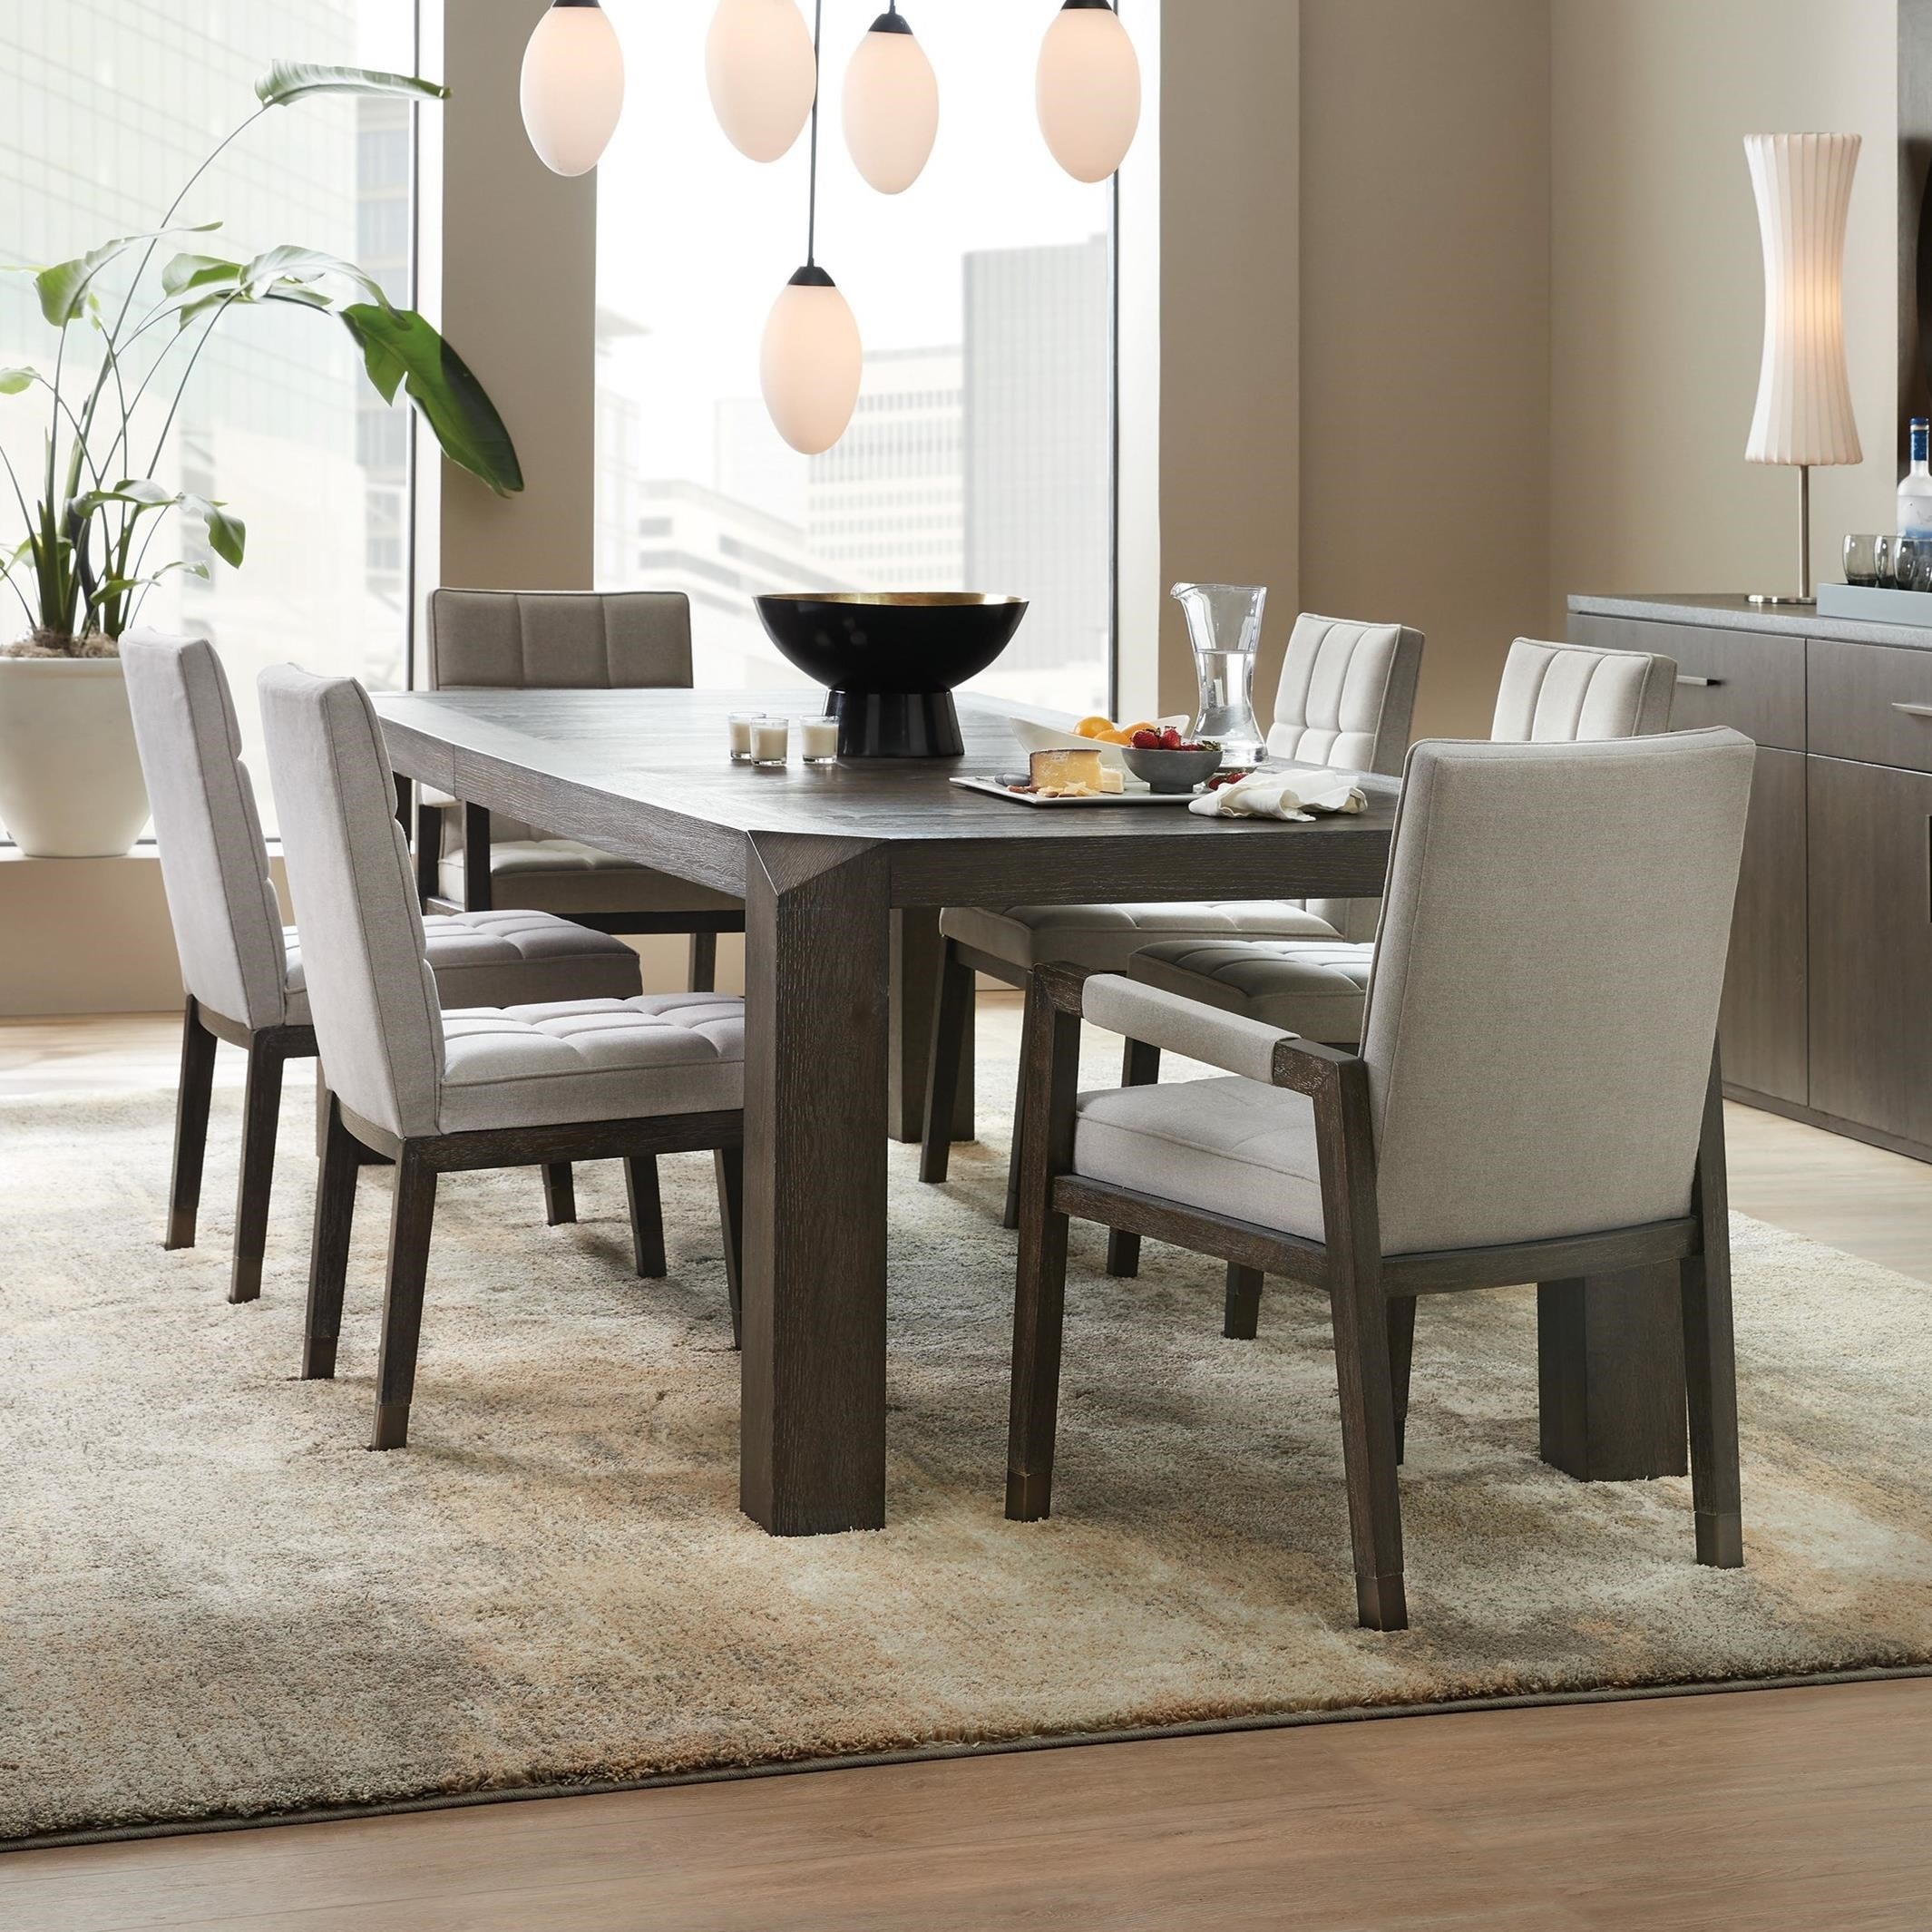 Miramar Aventura 7 Piece Table and Chair Set by Hooker Furniture at Baer's Furniture